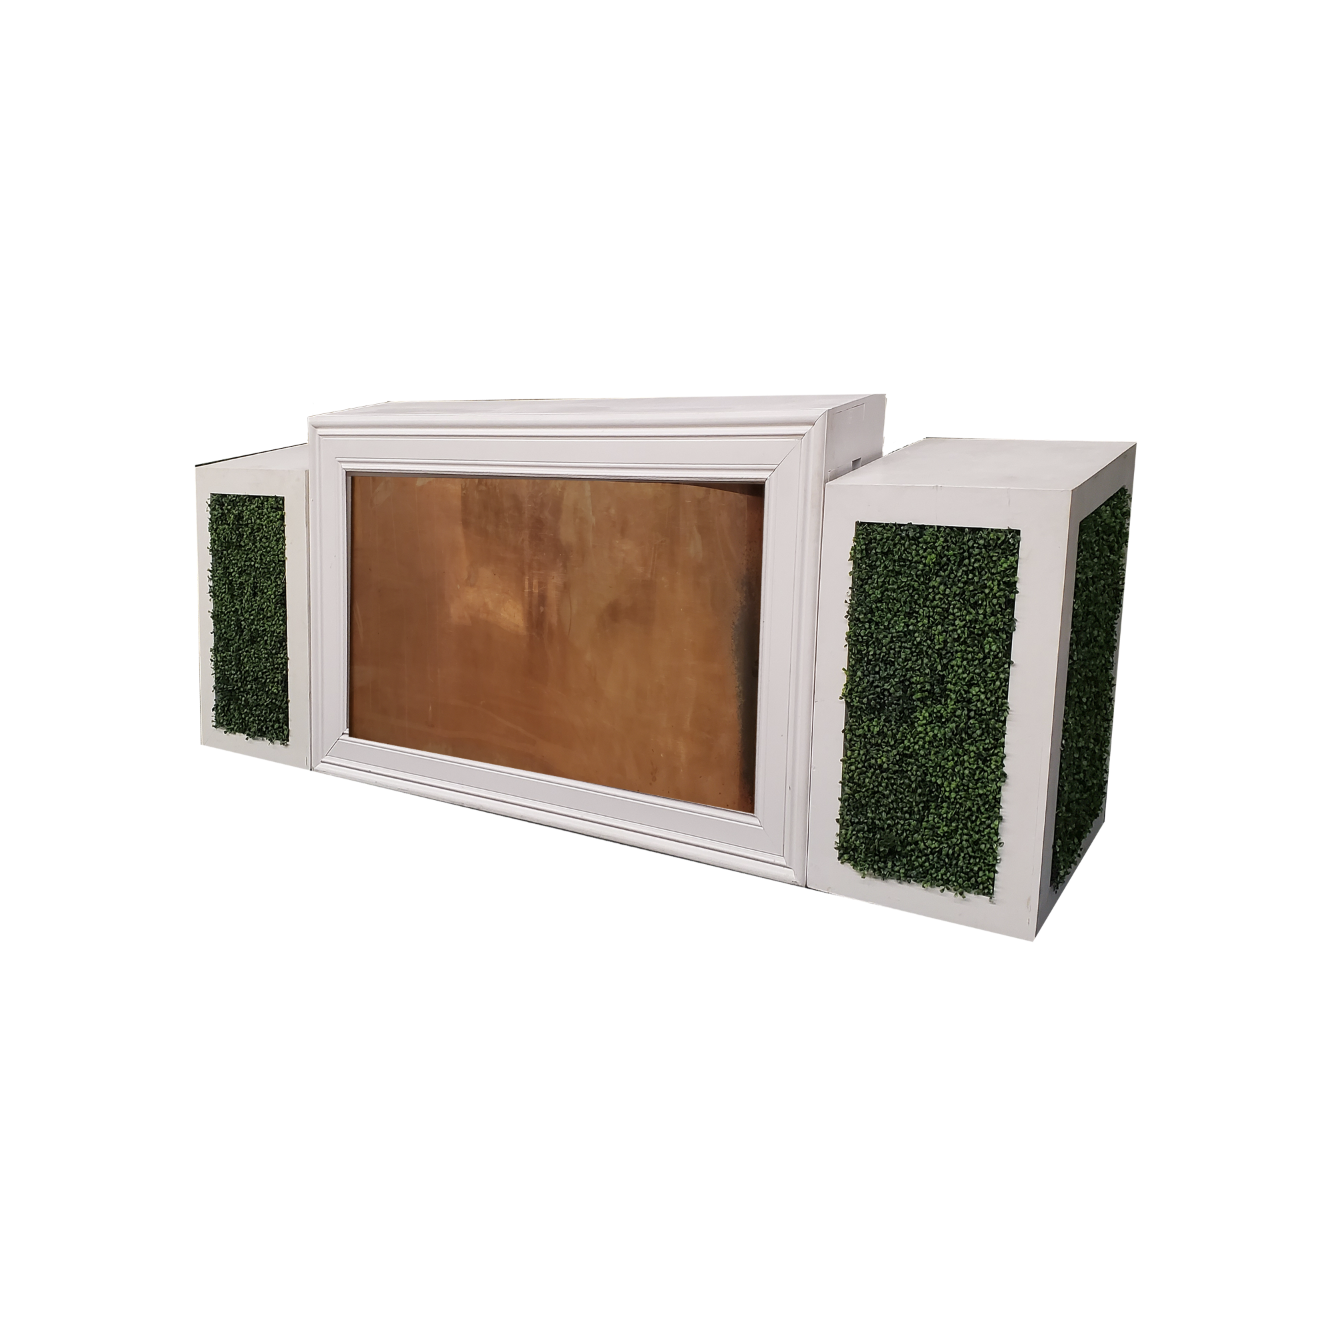 White Frame/Copper Insert with Hedge Pedestals $350